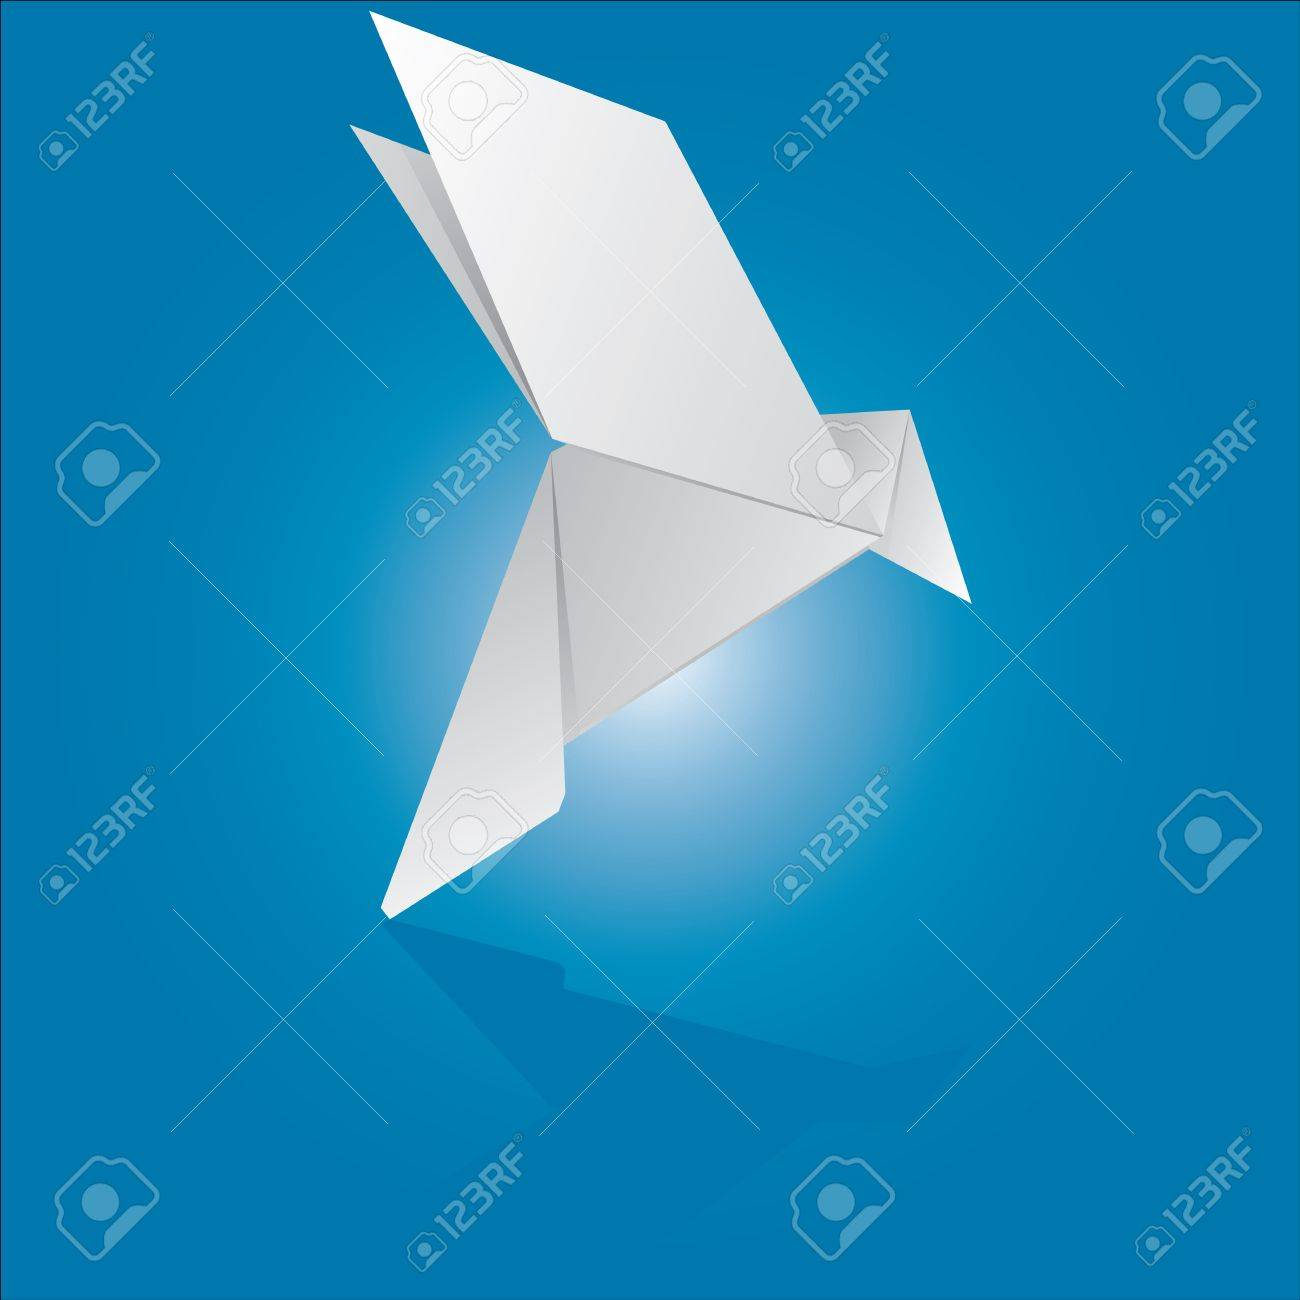 Vector Illustration Of An Origami Dove Royalty Free Cliparts